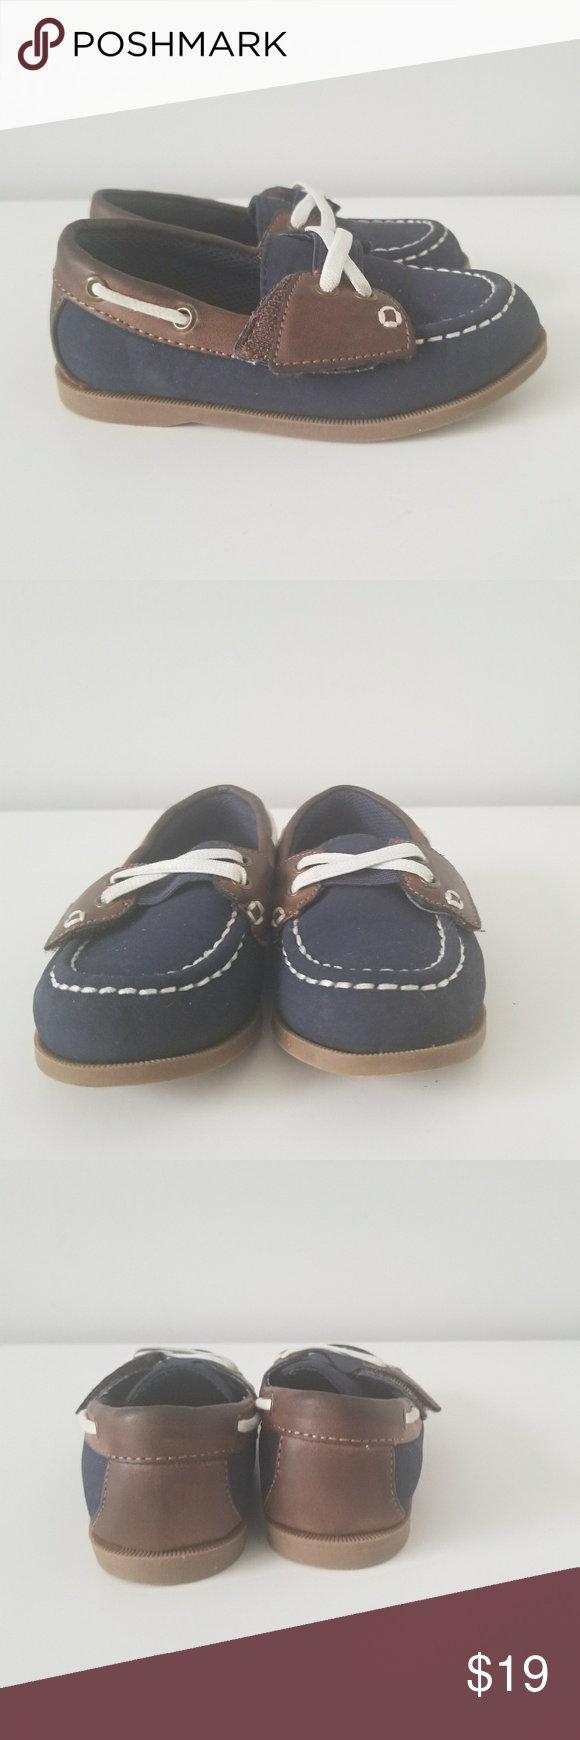 d4c04fa75dc Casual Max   Jake Boat Shoes Adorable blue and brown loafers with velcro  strap across the top. No laces. Size 8 max + jake Shoes Dress Shoes